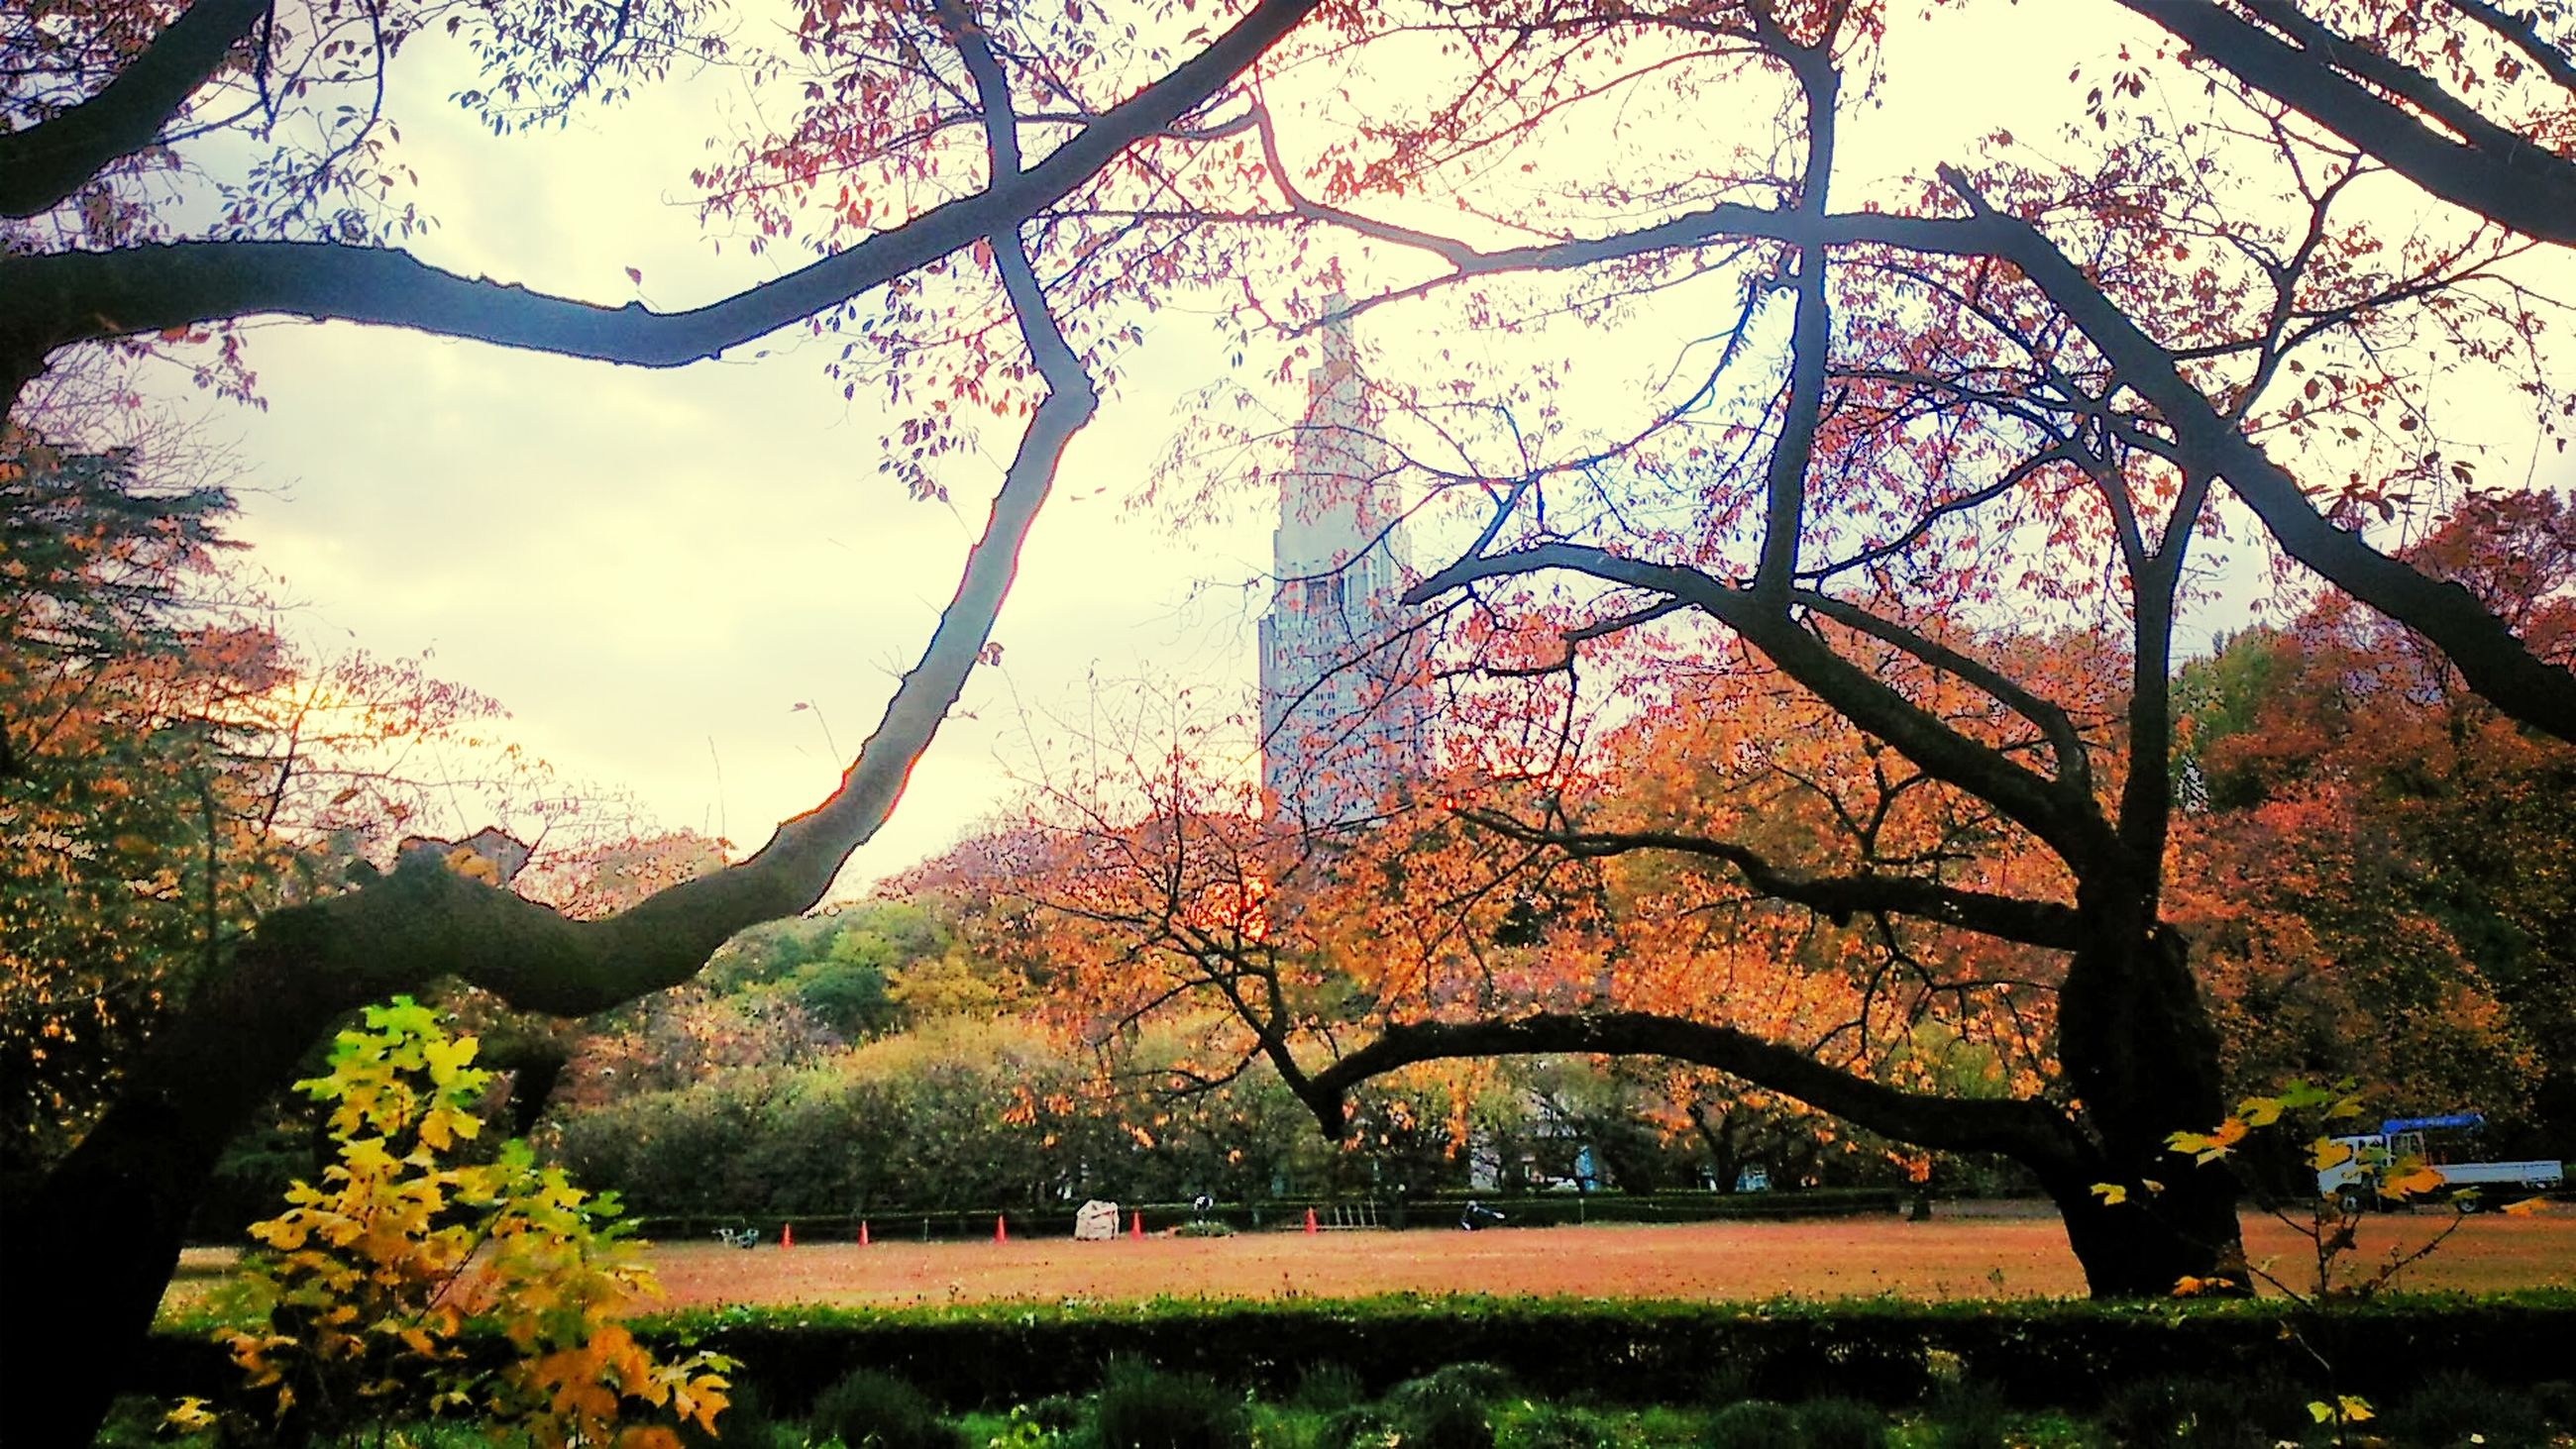 tree, branch, architecture, built structure, park - man made space, growth, sky, beauty in nature, nature, building exterior, flower, tranquility, park, grass, tranquil scene, tree trunk, bare tree, scenics, green color, travel destinations